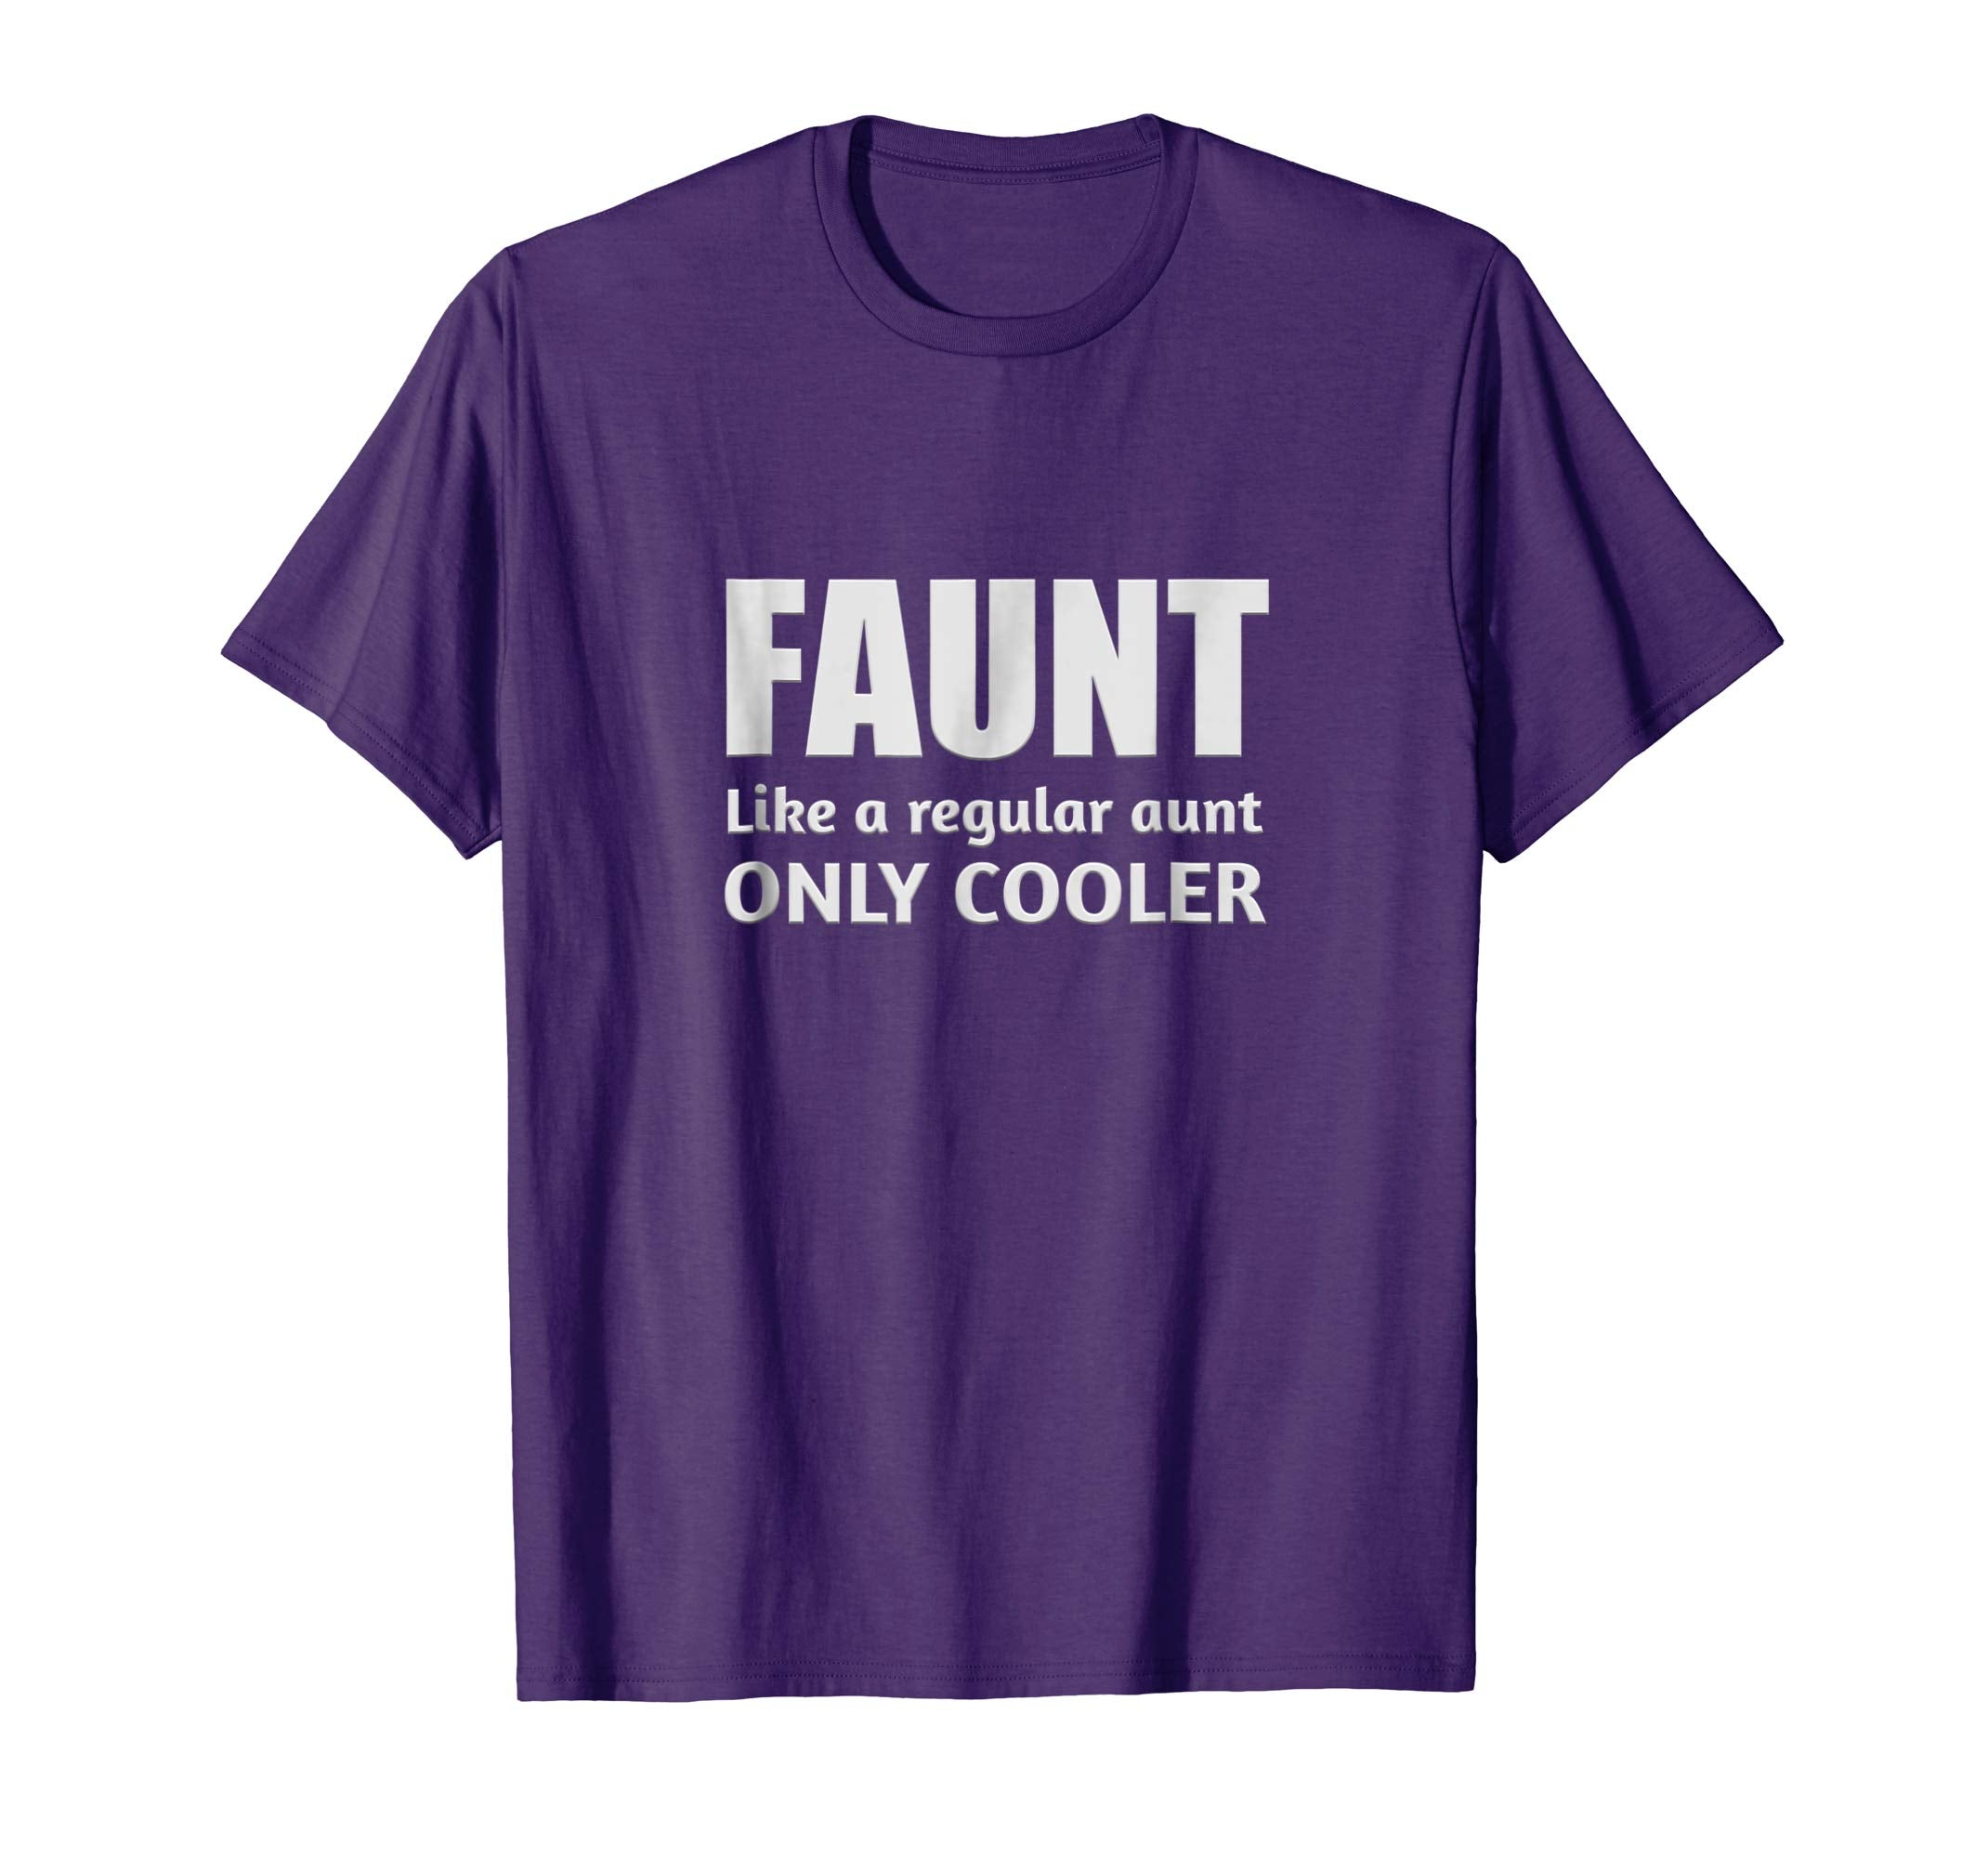 Faunt Like A Regular Aunt Only Cooler Definition Tee Shirt